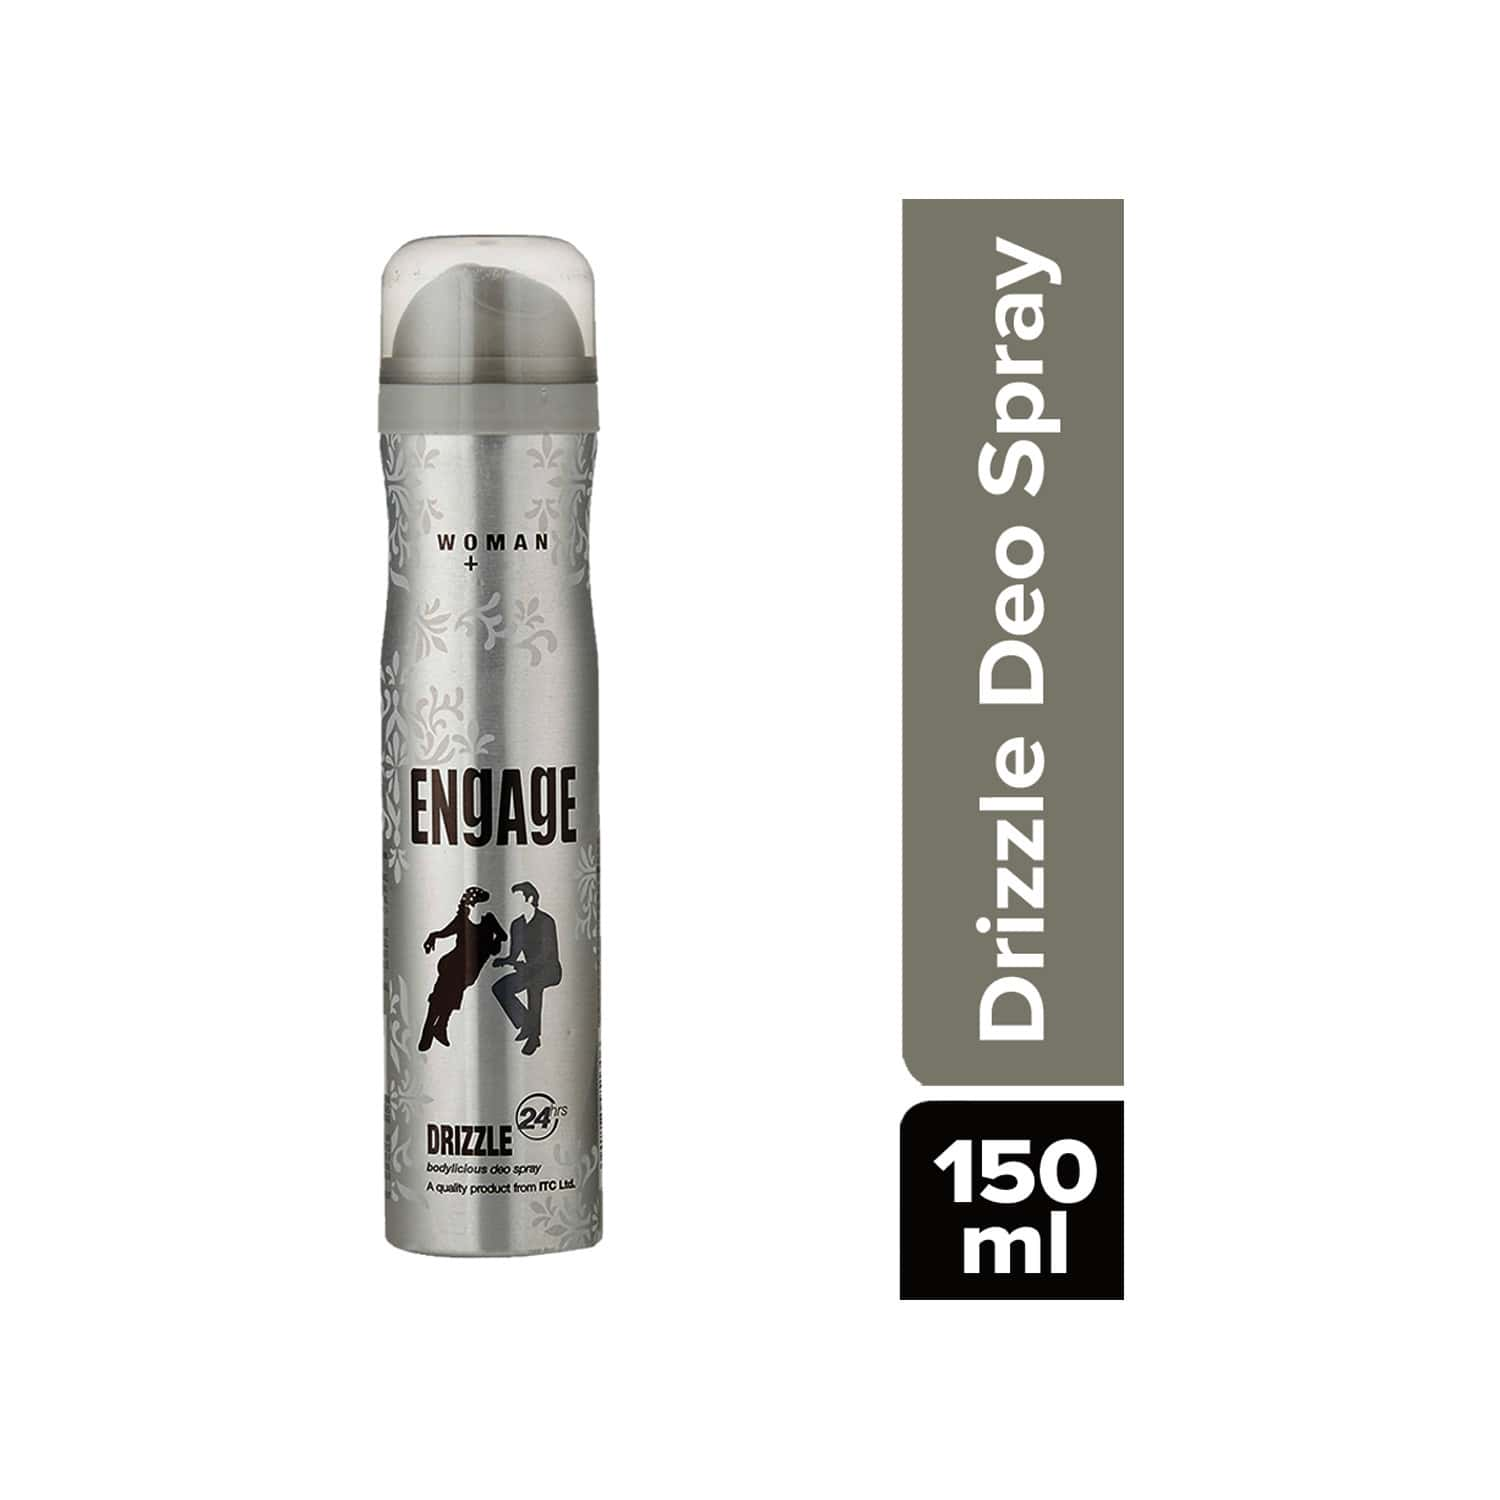 Engage Drizzle Deodorant For Women - 150ml